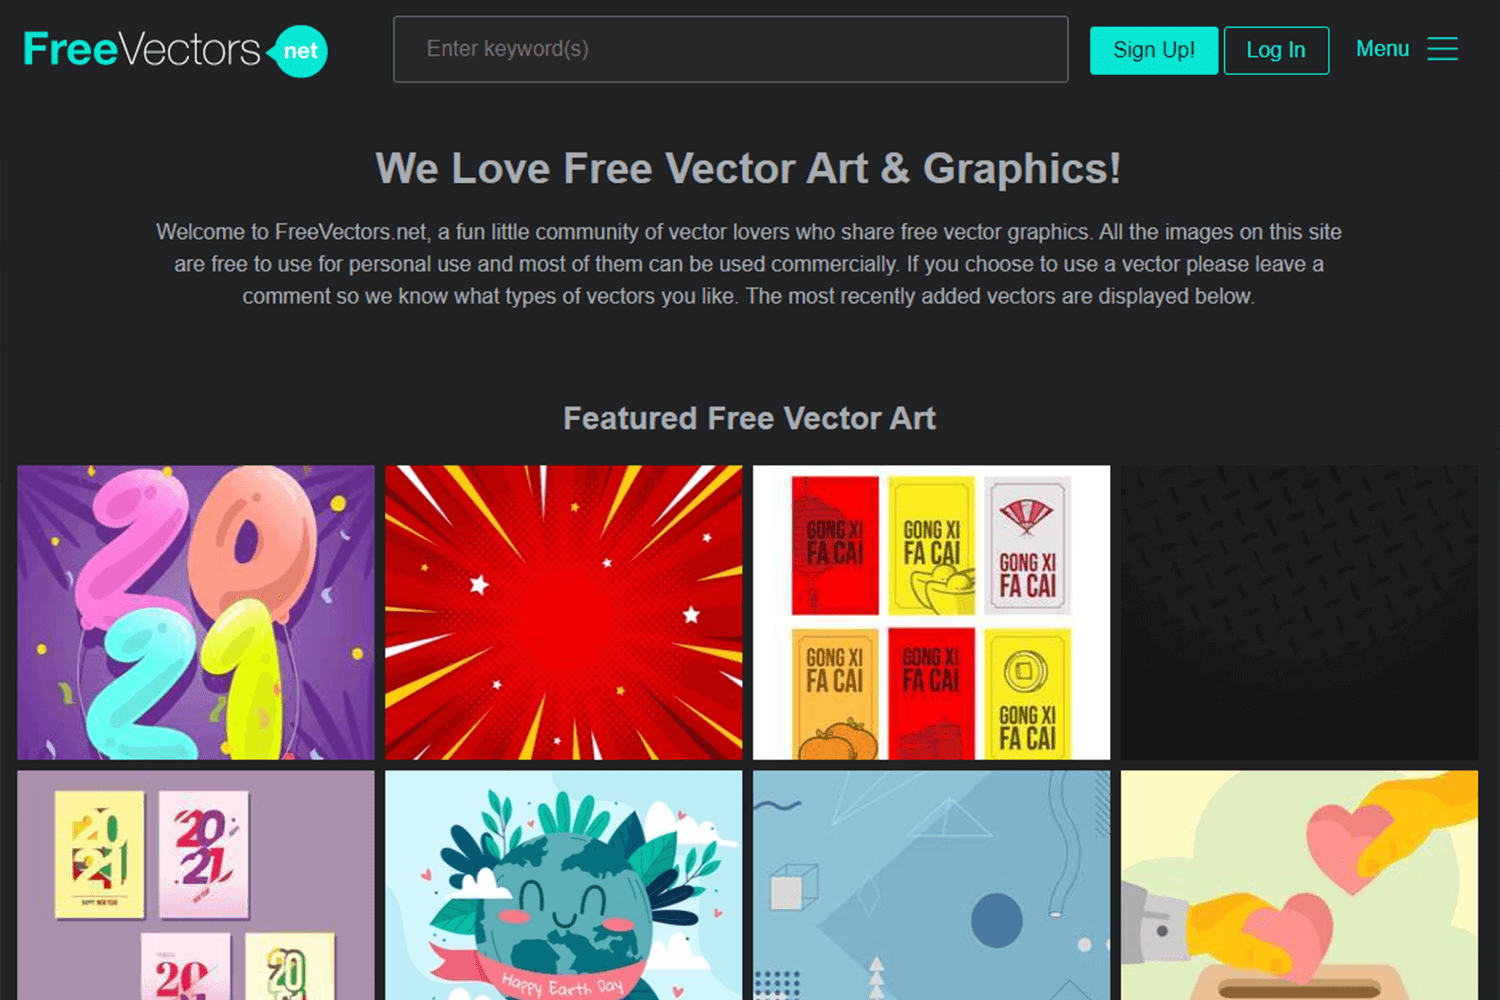 freevectors.net for images and illustrations that are free